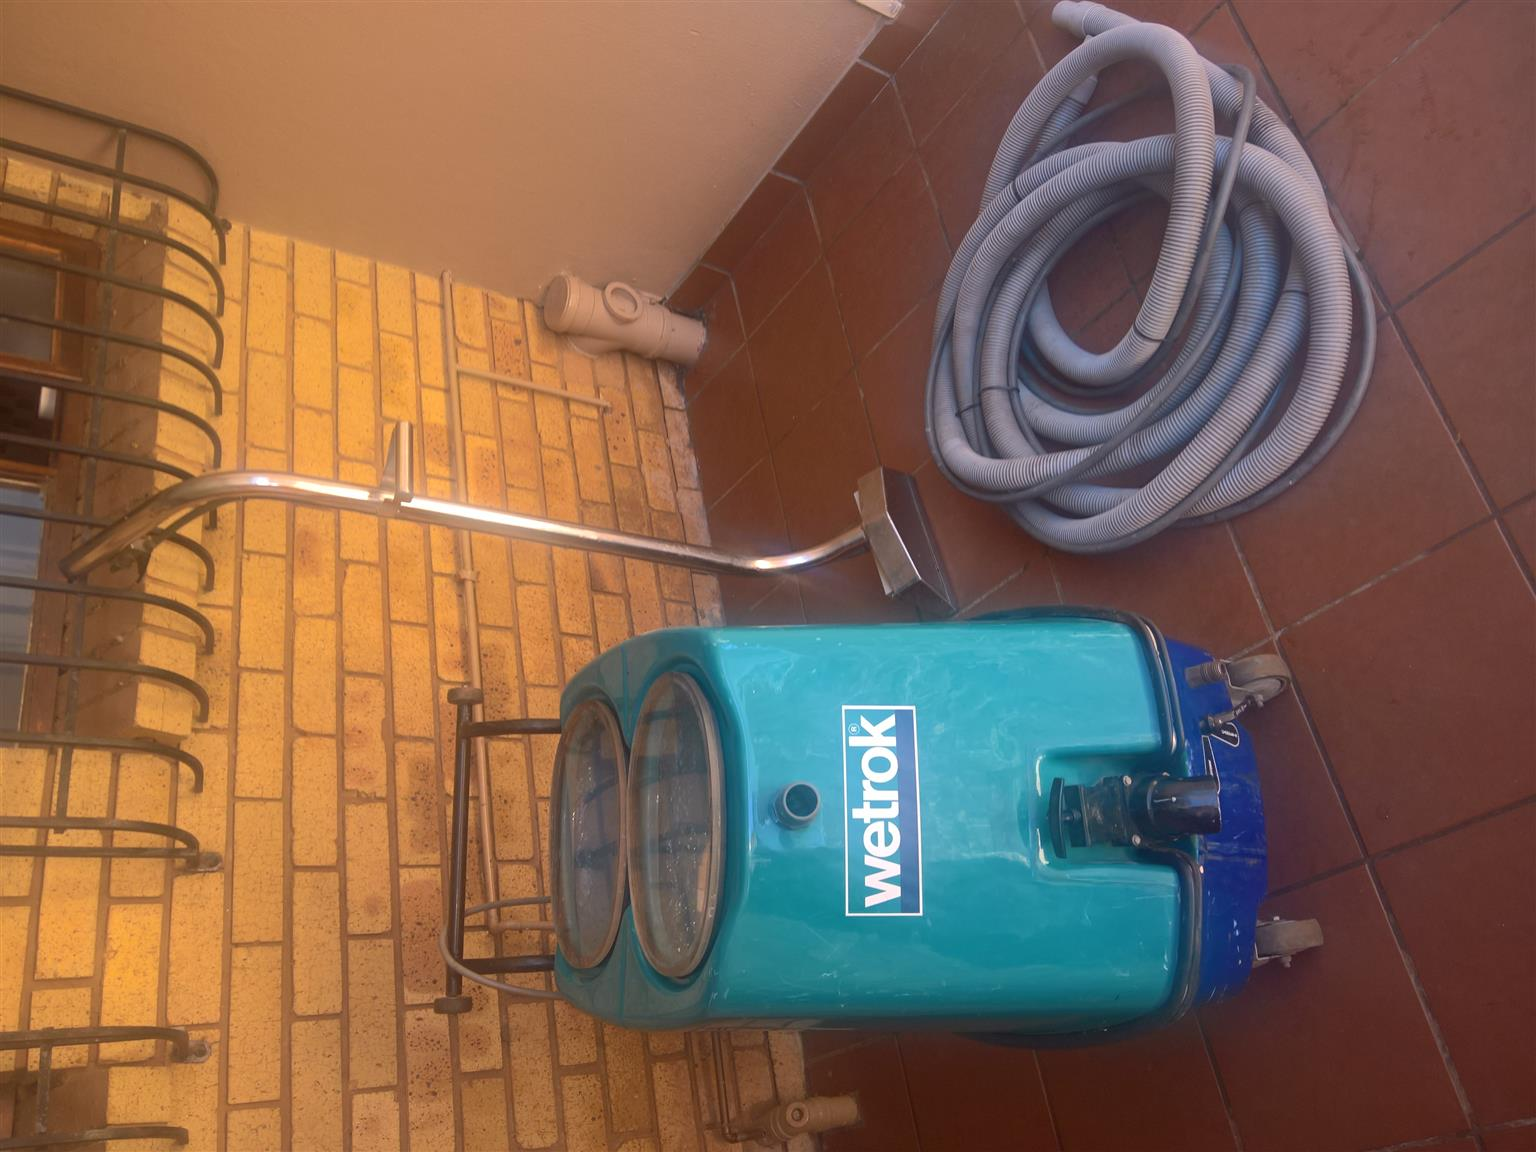 Wetrok Carpet and Upholstery Cleaner for Industrial use. Comes complete